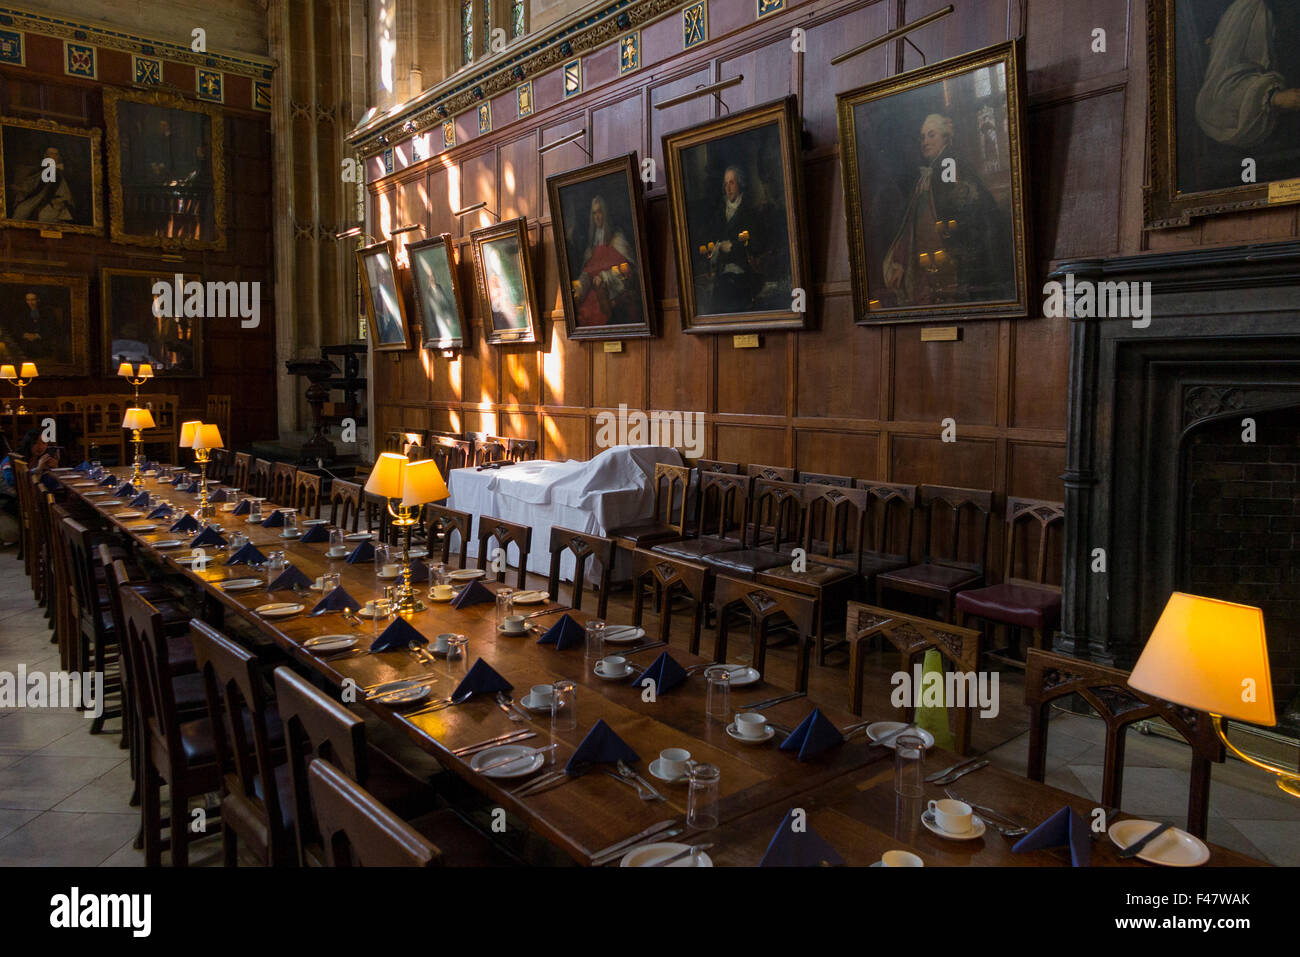 Laid dining table inside interior of the great hall the for Dining hall interior